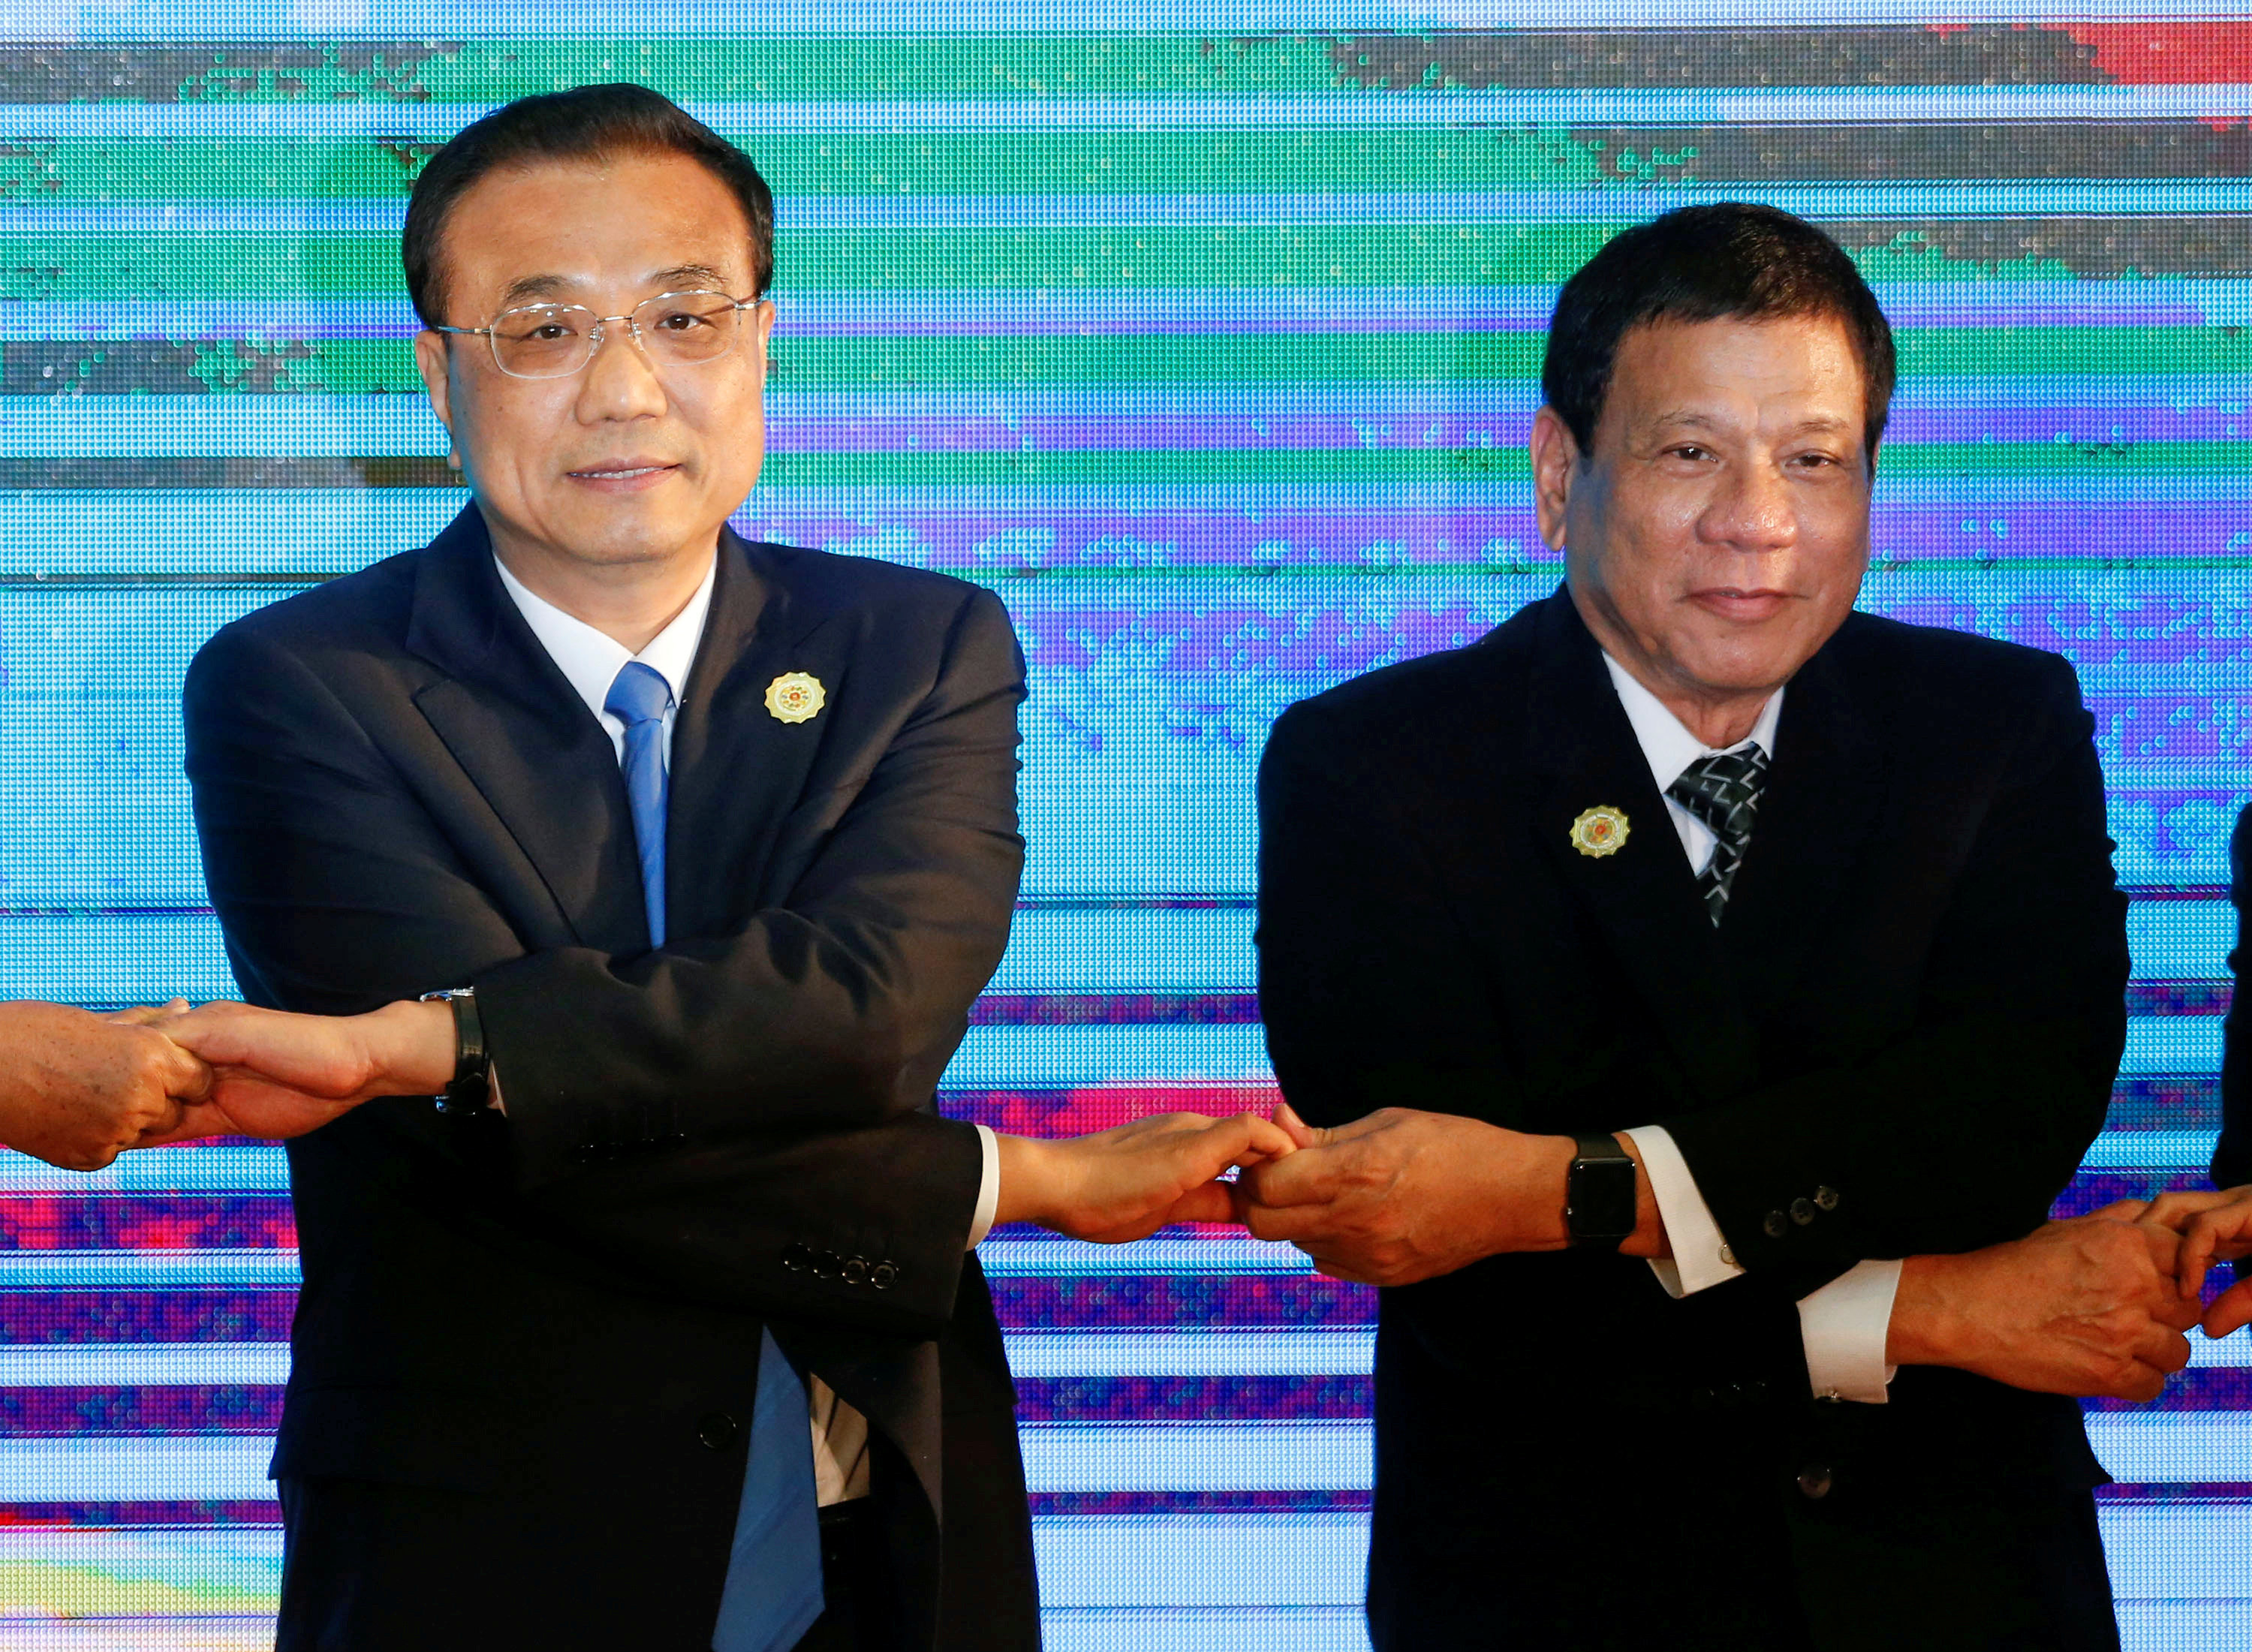 Chinese Premier Li Keqiang (L) and Philippine President Rodrigo Duterte (R) pose for photo during the ASEAN Plus Three Summit in Vientiane, Laos September 7, 2016